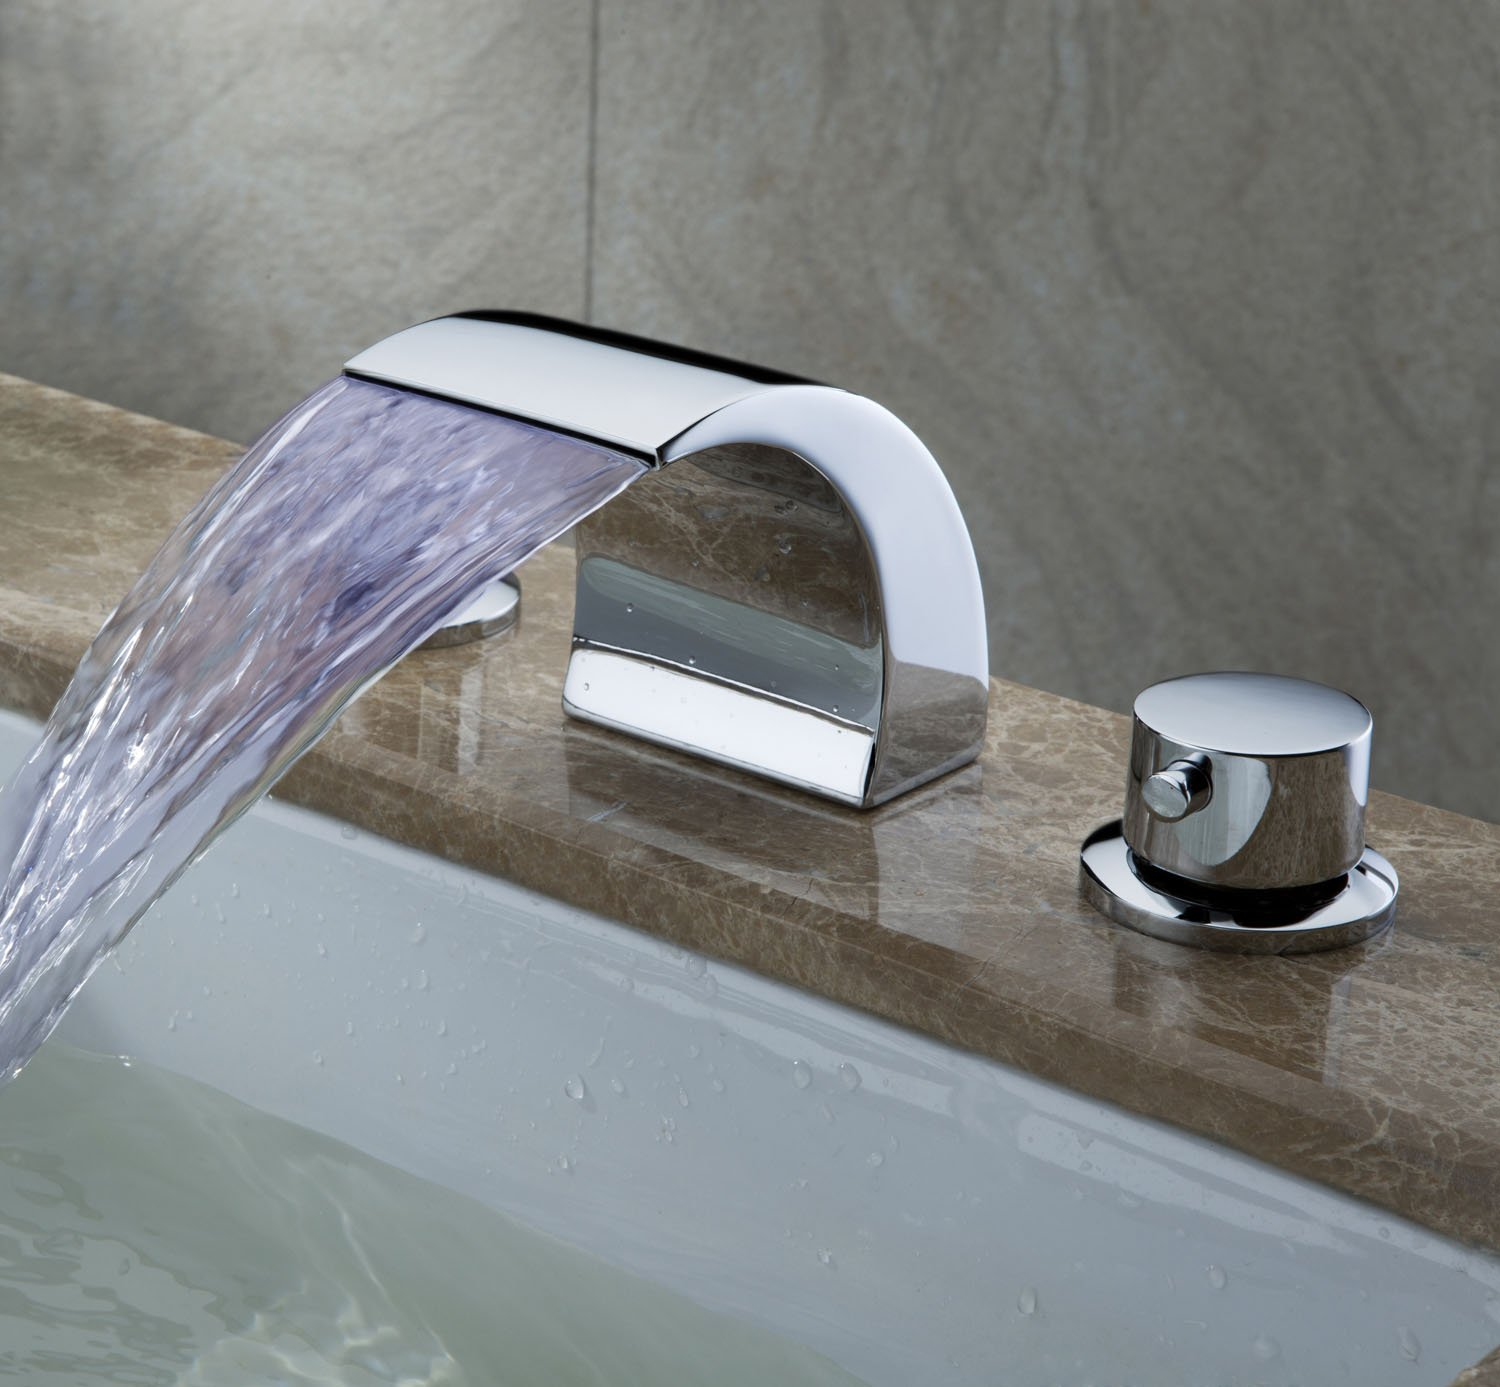 Greenspring Widespread Bathroom Sink Faucet LED Color Light Two Handles Waterfall Faucets,Chrome